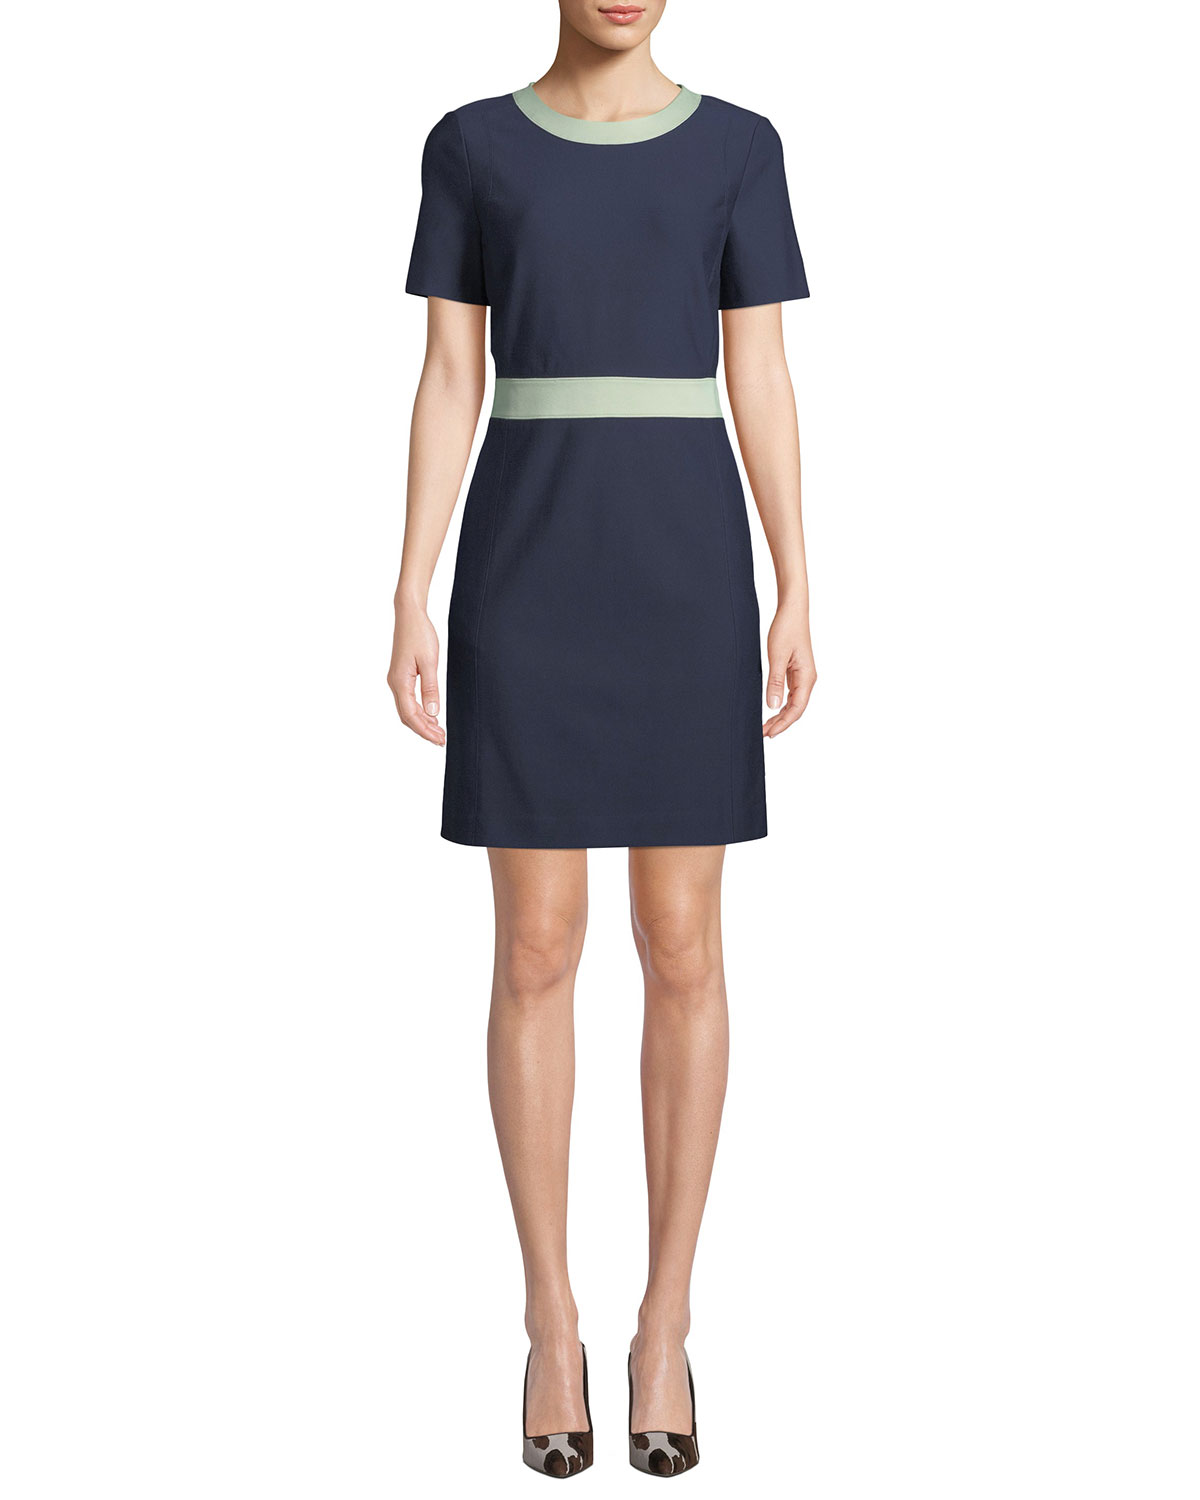 TORY BURCH Colorblock Ponte Short-Sleeve Dress in Blue